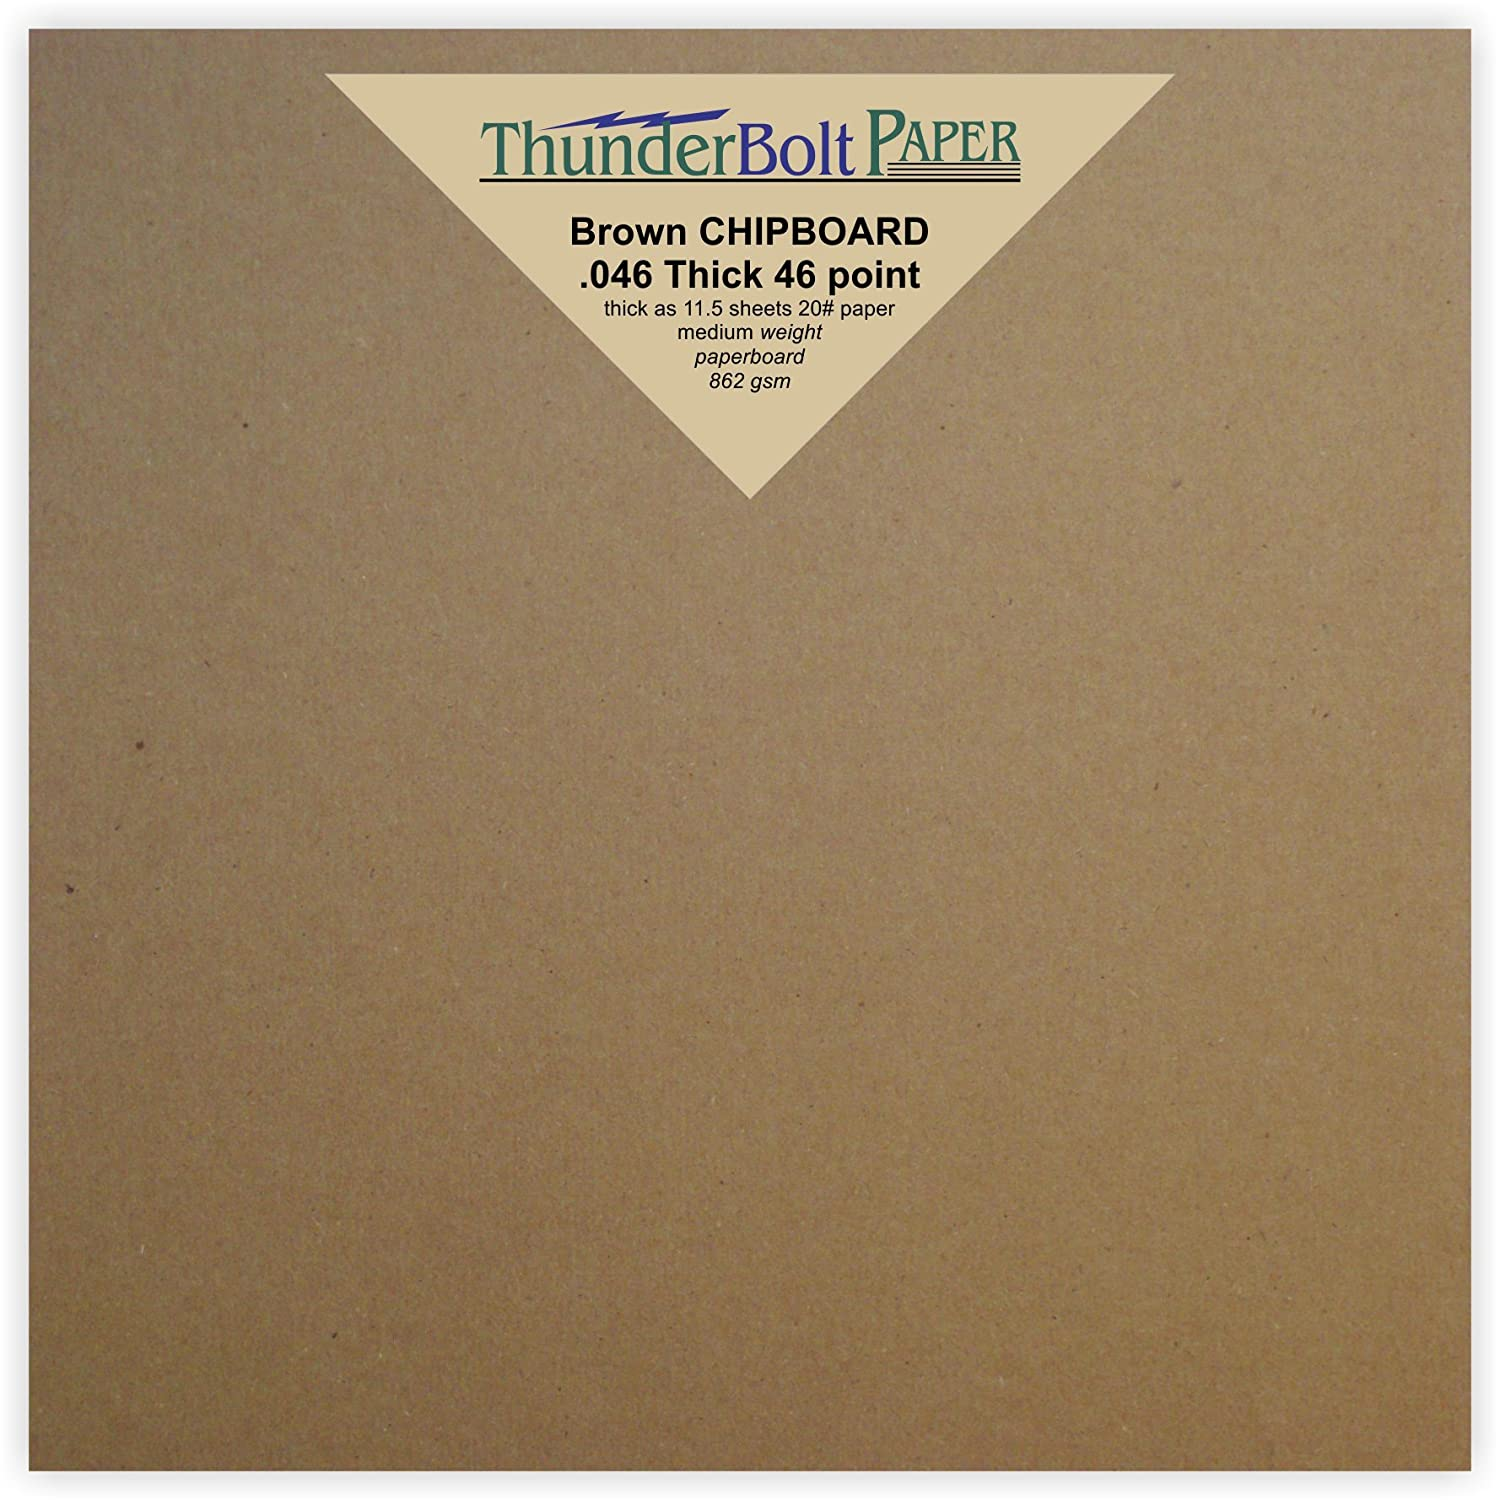 22pt Point .022 Caliper Thick MagicWater Supply Light Weight Brown Kraft Cardboard for Scrapbooking /& Picture Frame Backing 25 Chipboard Sheets 11 x 14 inch Paper Board